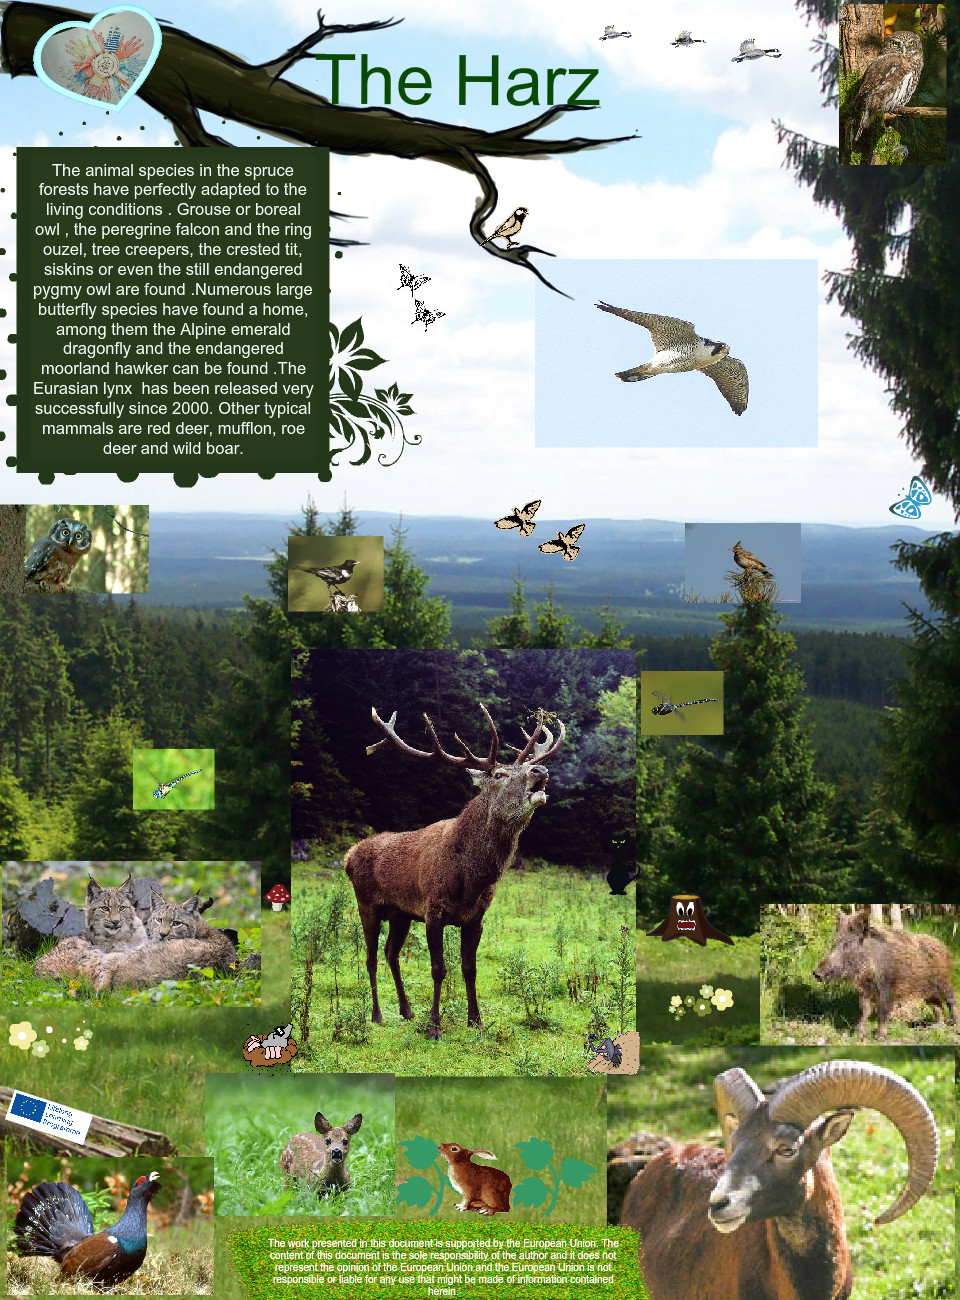 The Harz Overview